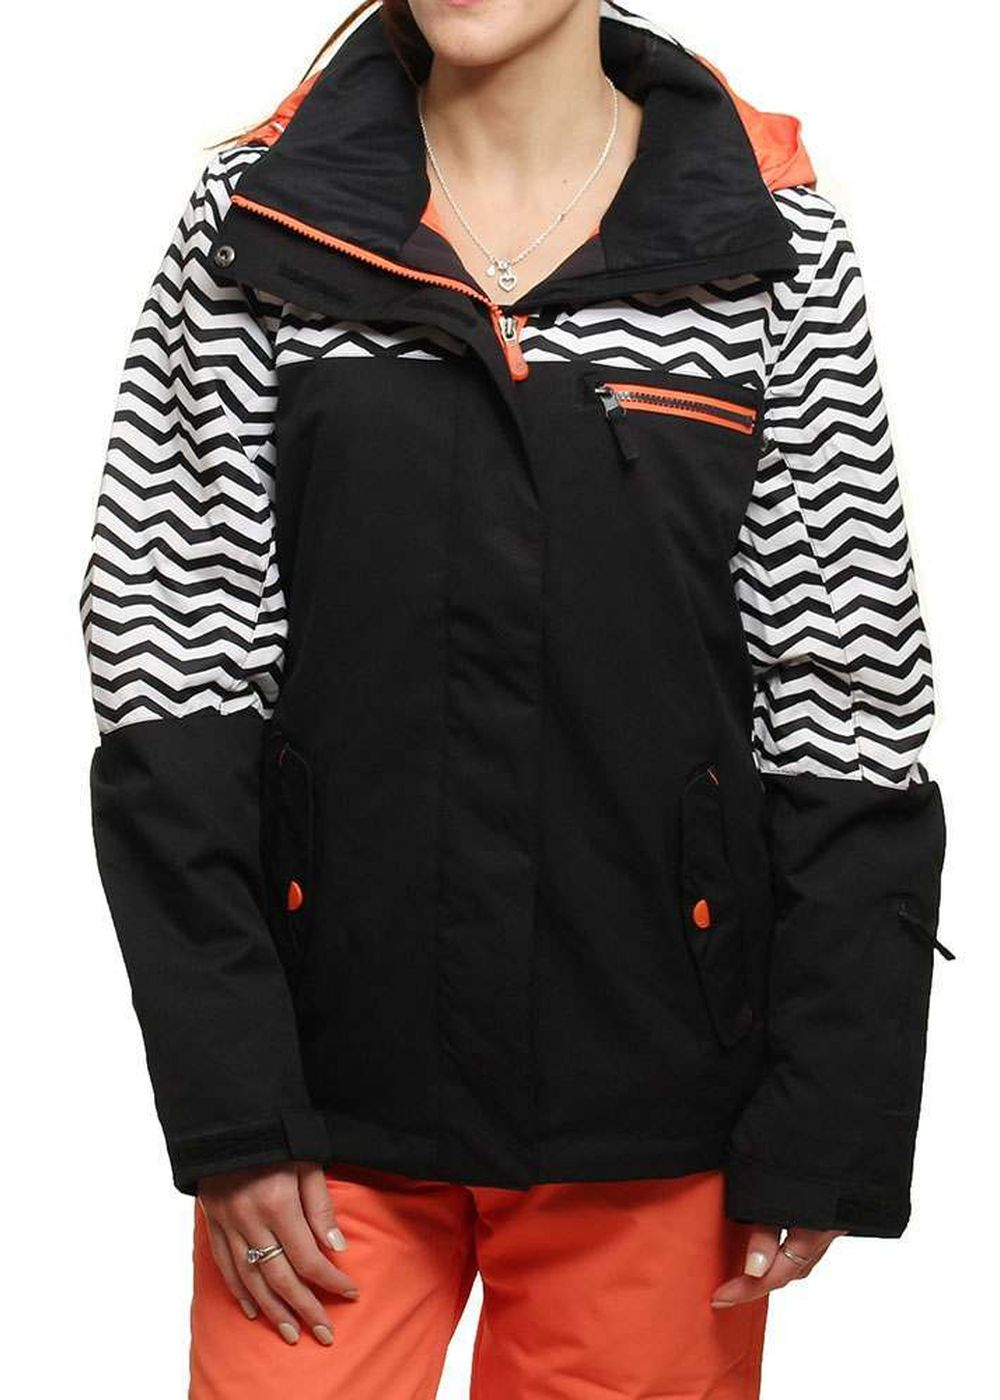 Roxy jetty block women's insulated jacket